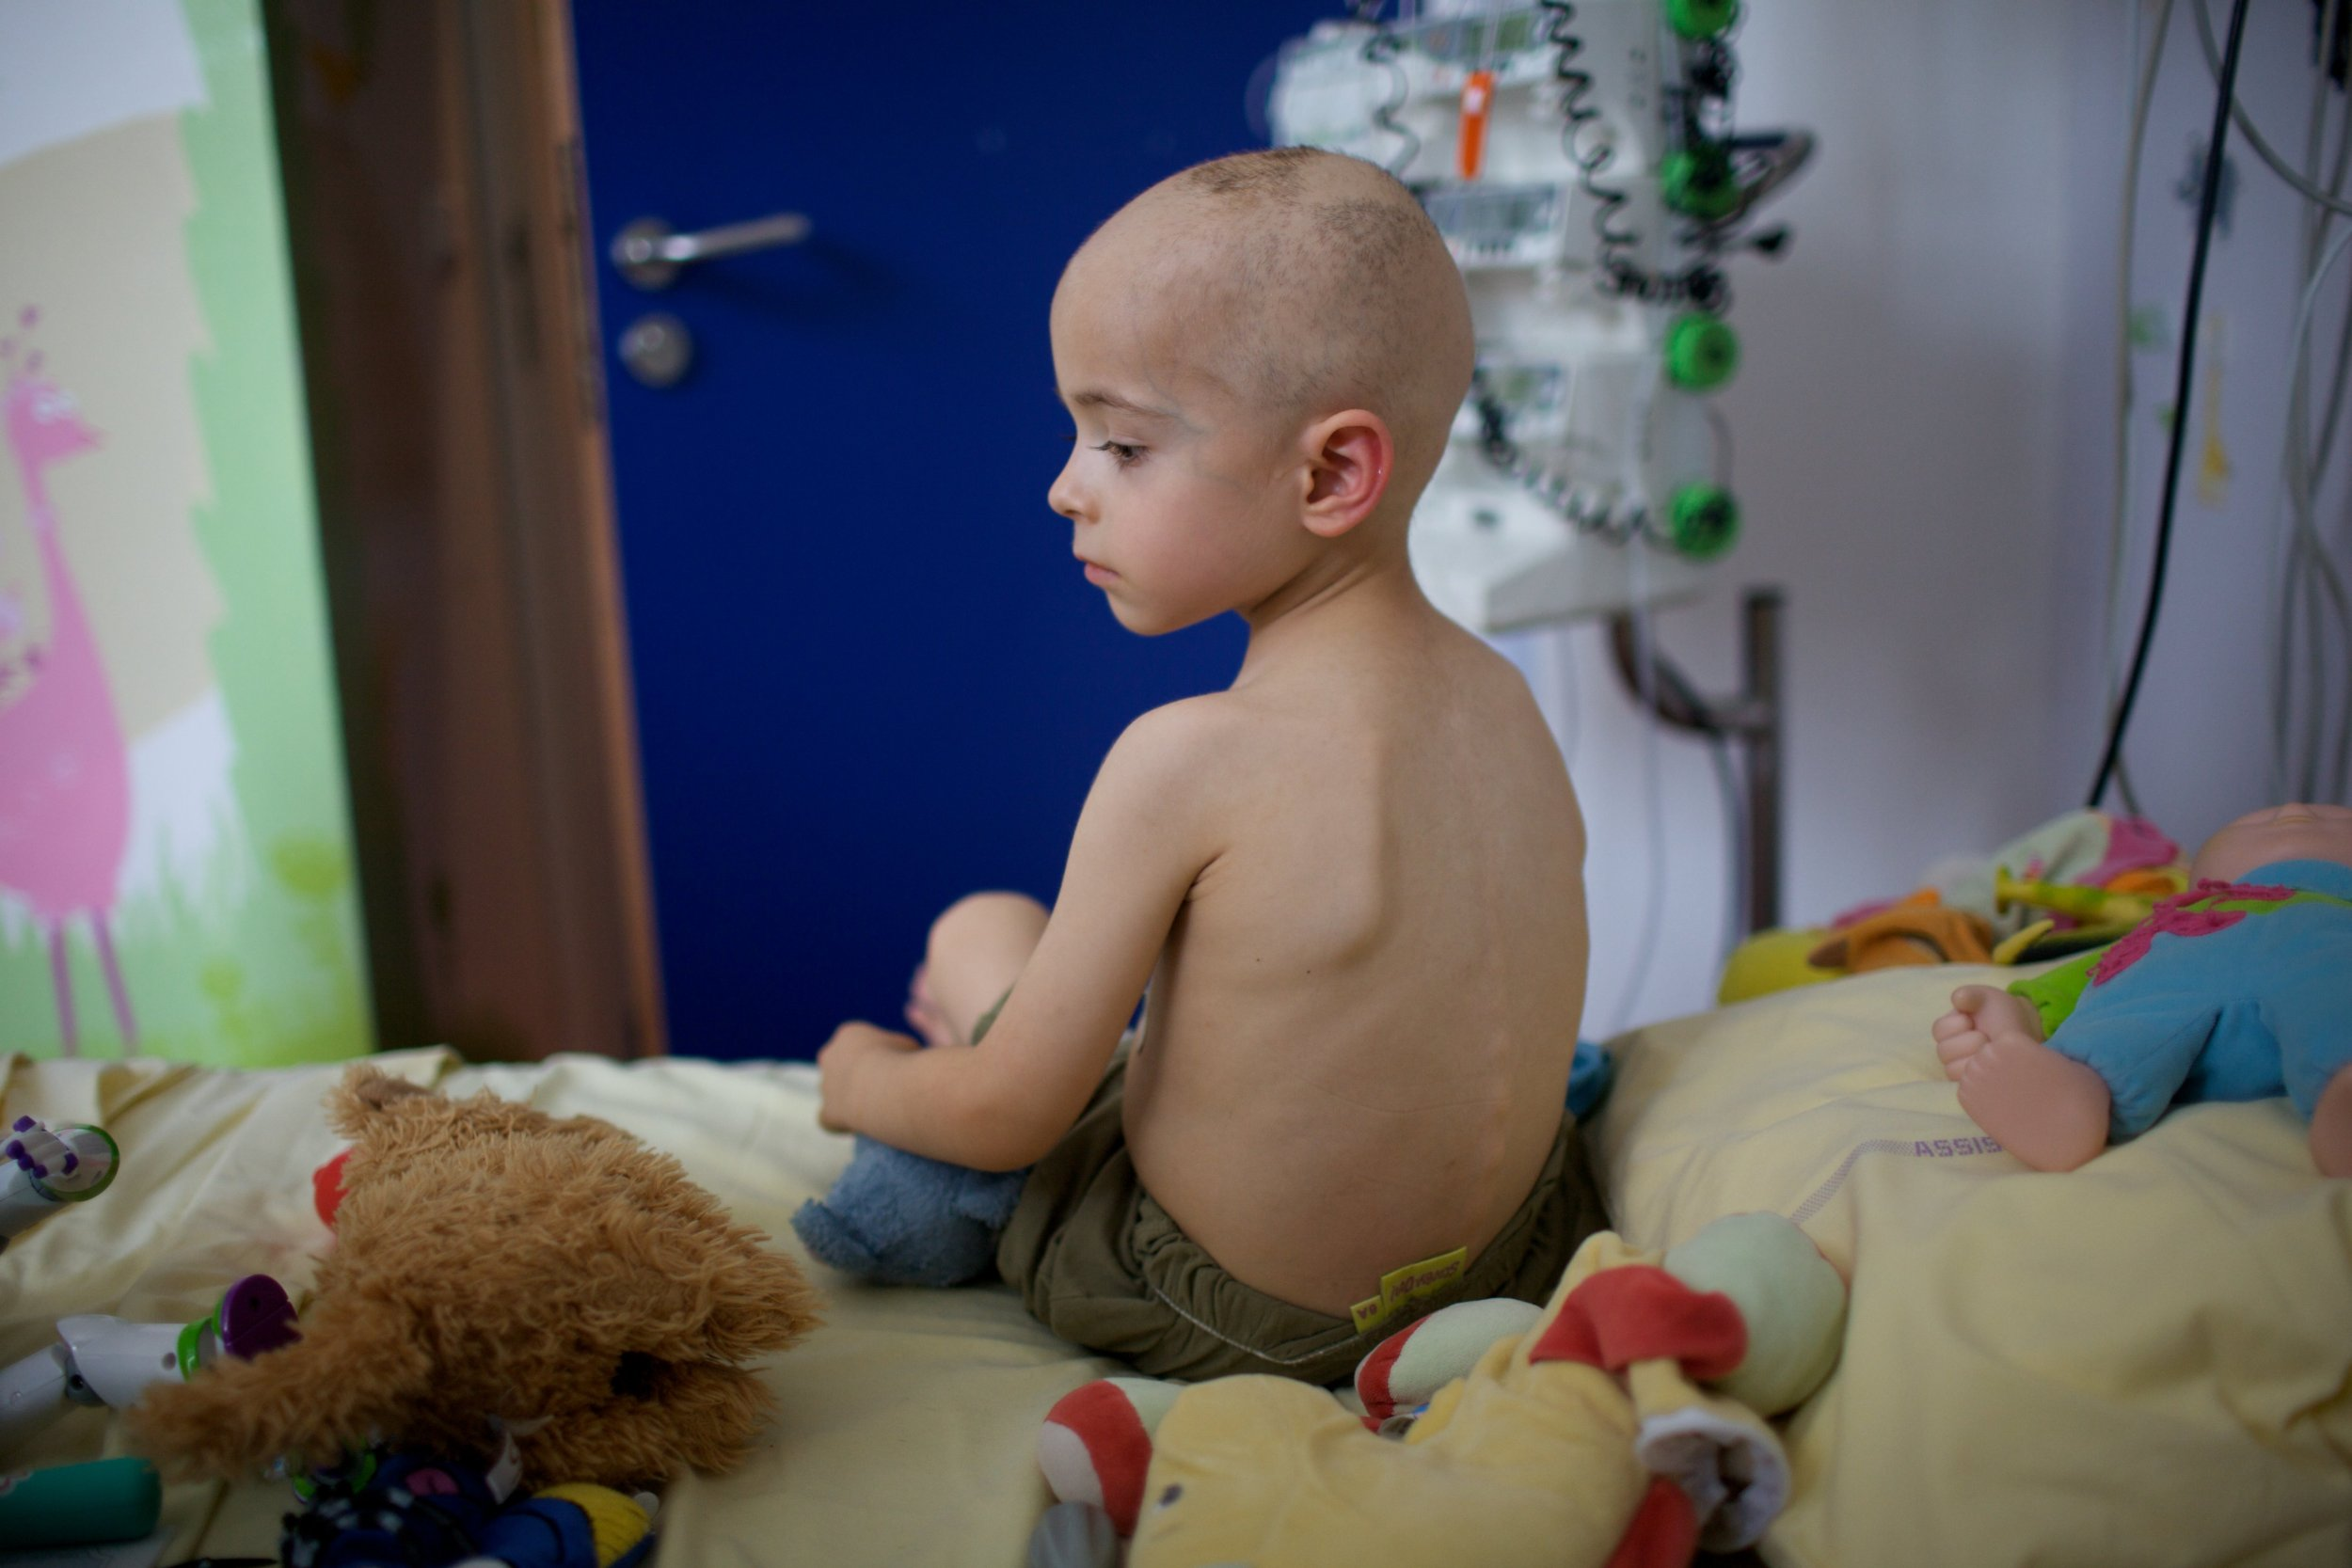 Children S Cancer Is Unprofitable And Ignored